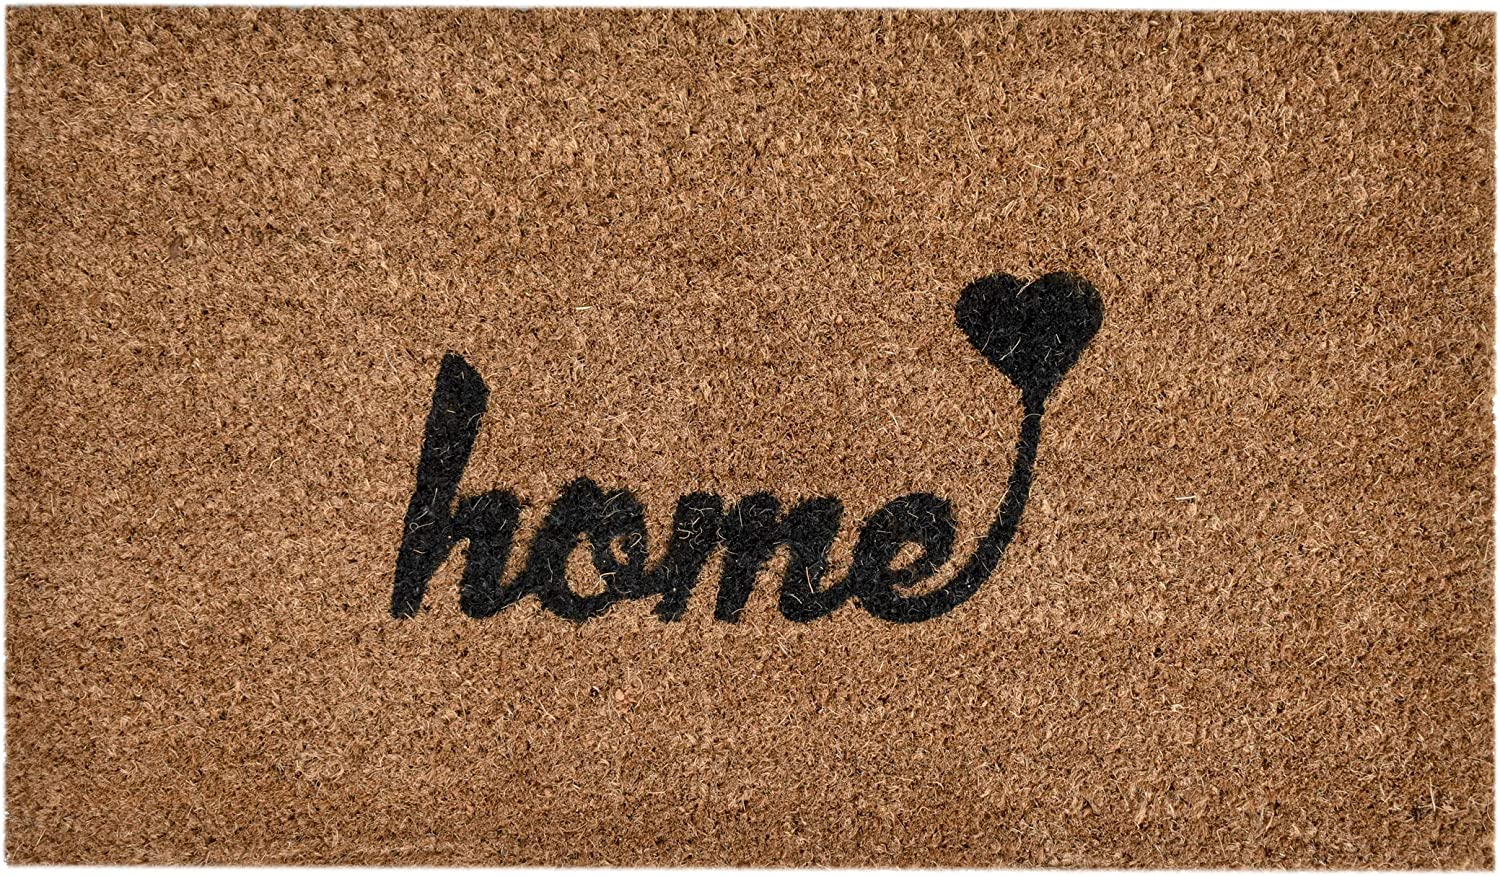 Ninamar Door Mat Home Natural Coir – 29.5 x 17.5 inch